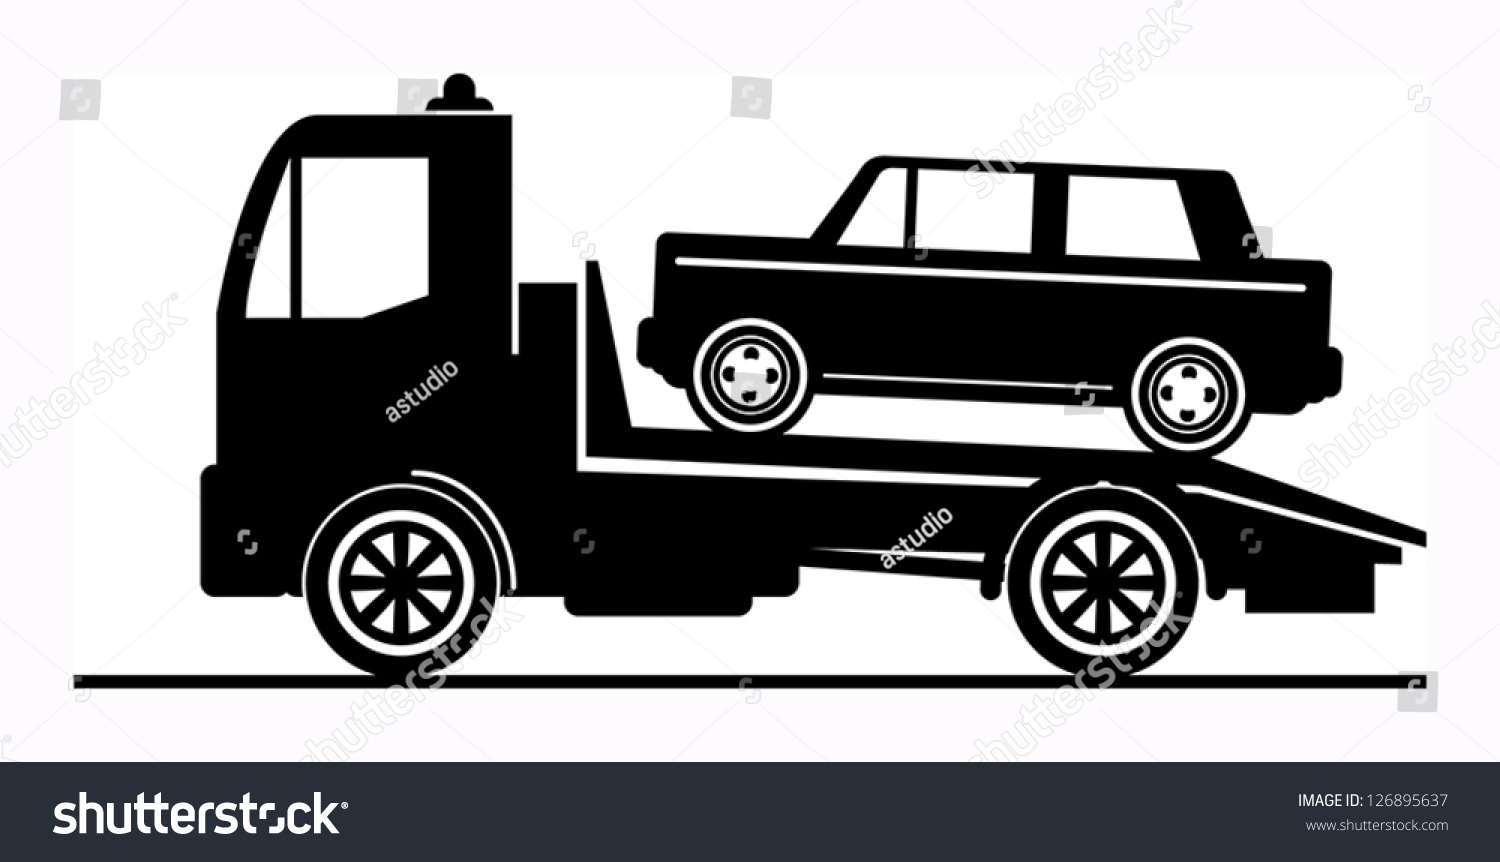 Car Salvage Towing Sign Vector Illustration Stock Vector 126895637 ...